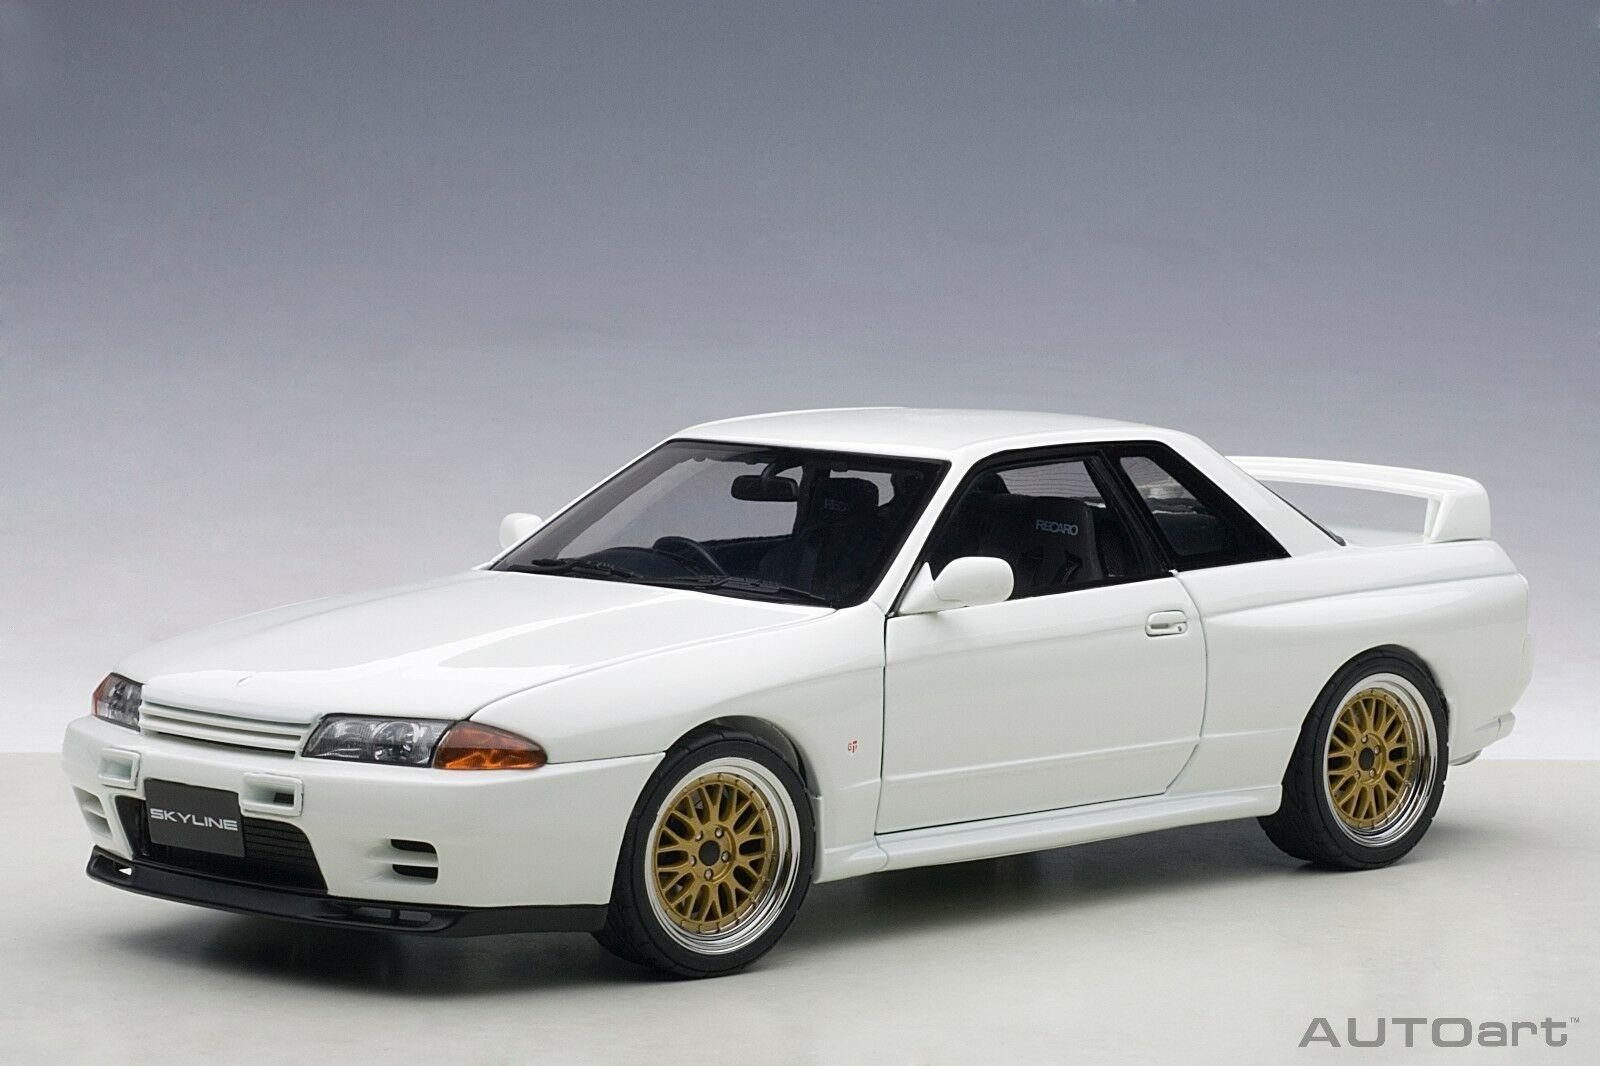 AUTOart 77416 NISSAN SKYLINE GT-R R32 V-Spec II road car white BBS 1 18th